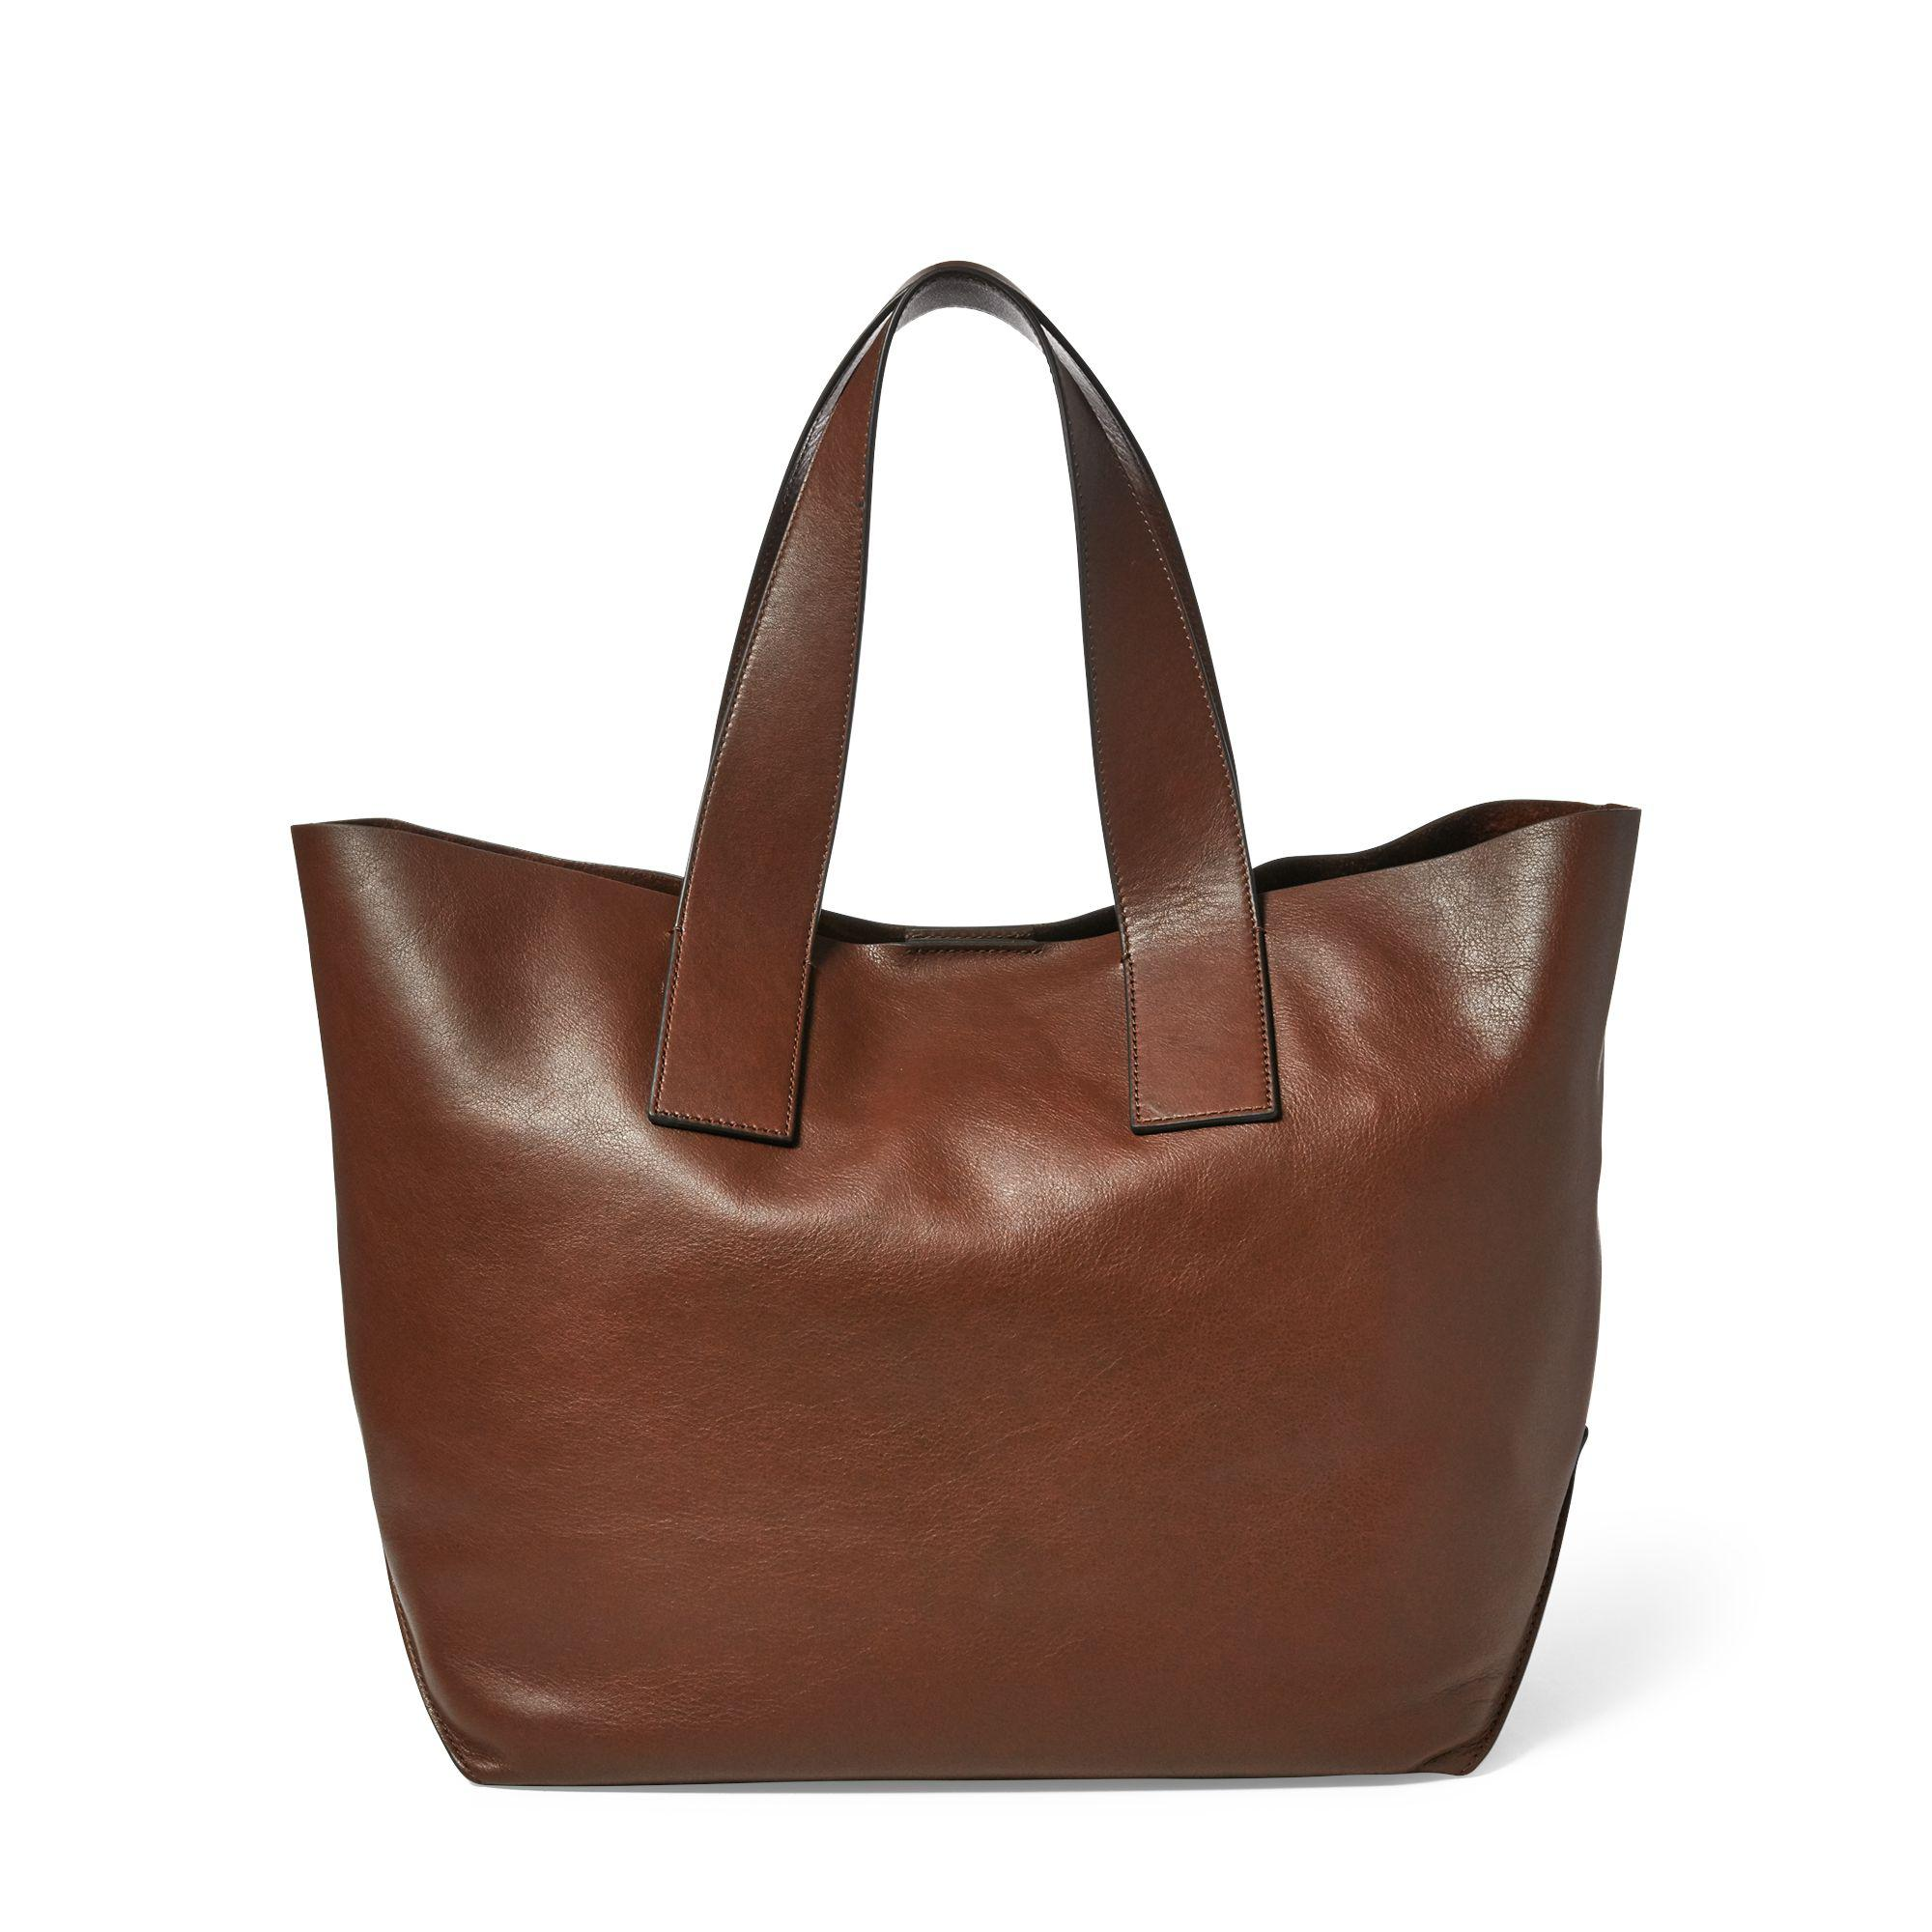 Lyst - Polo Ralph Lauren Studded Leather Polo Tote Bag in Brown 9d345dcdd0965